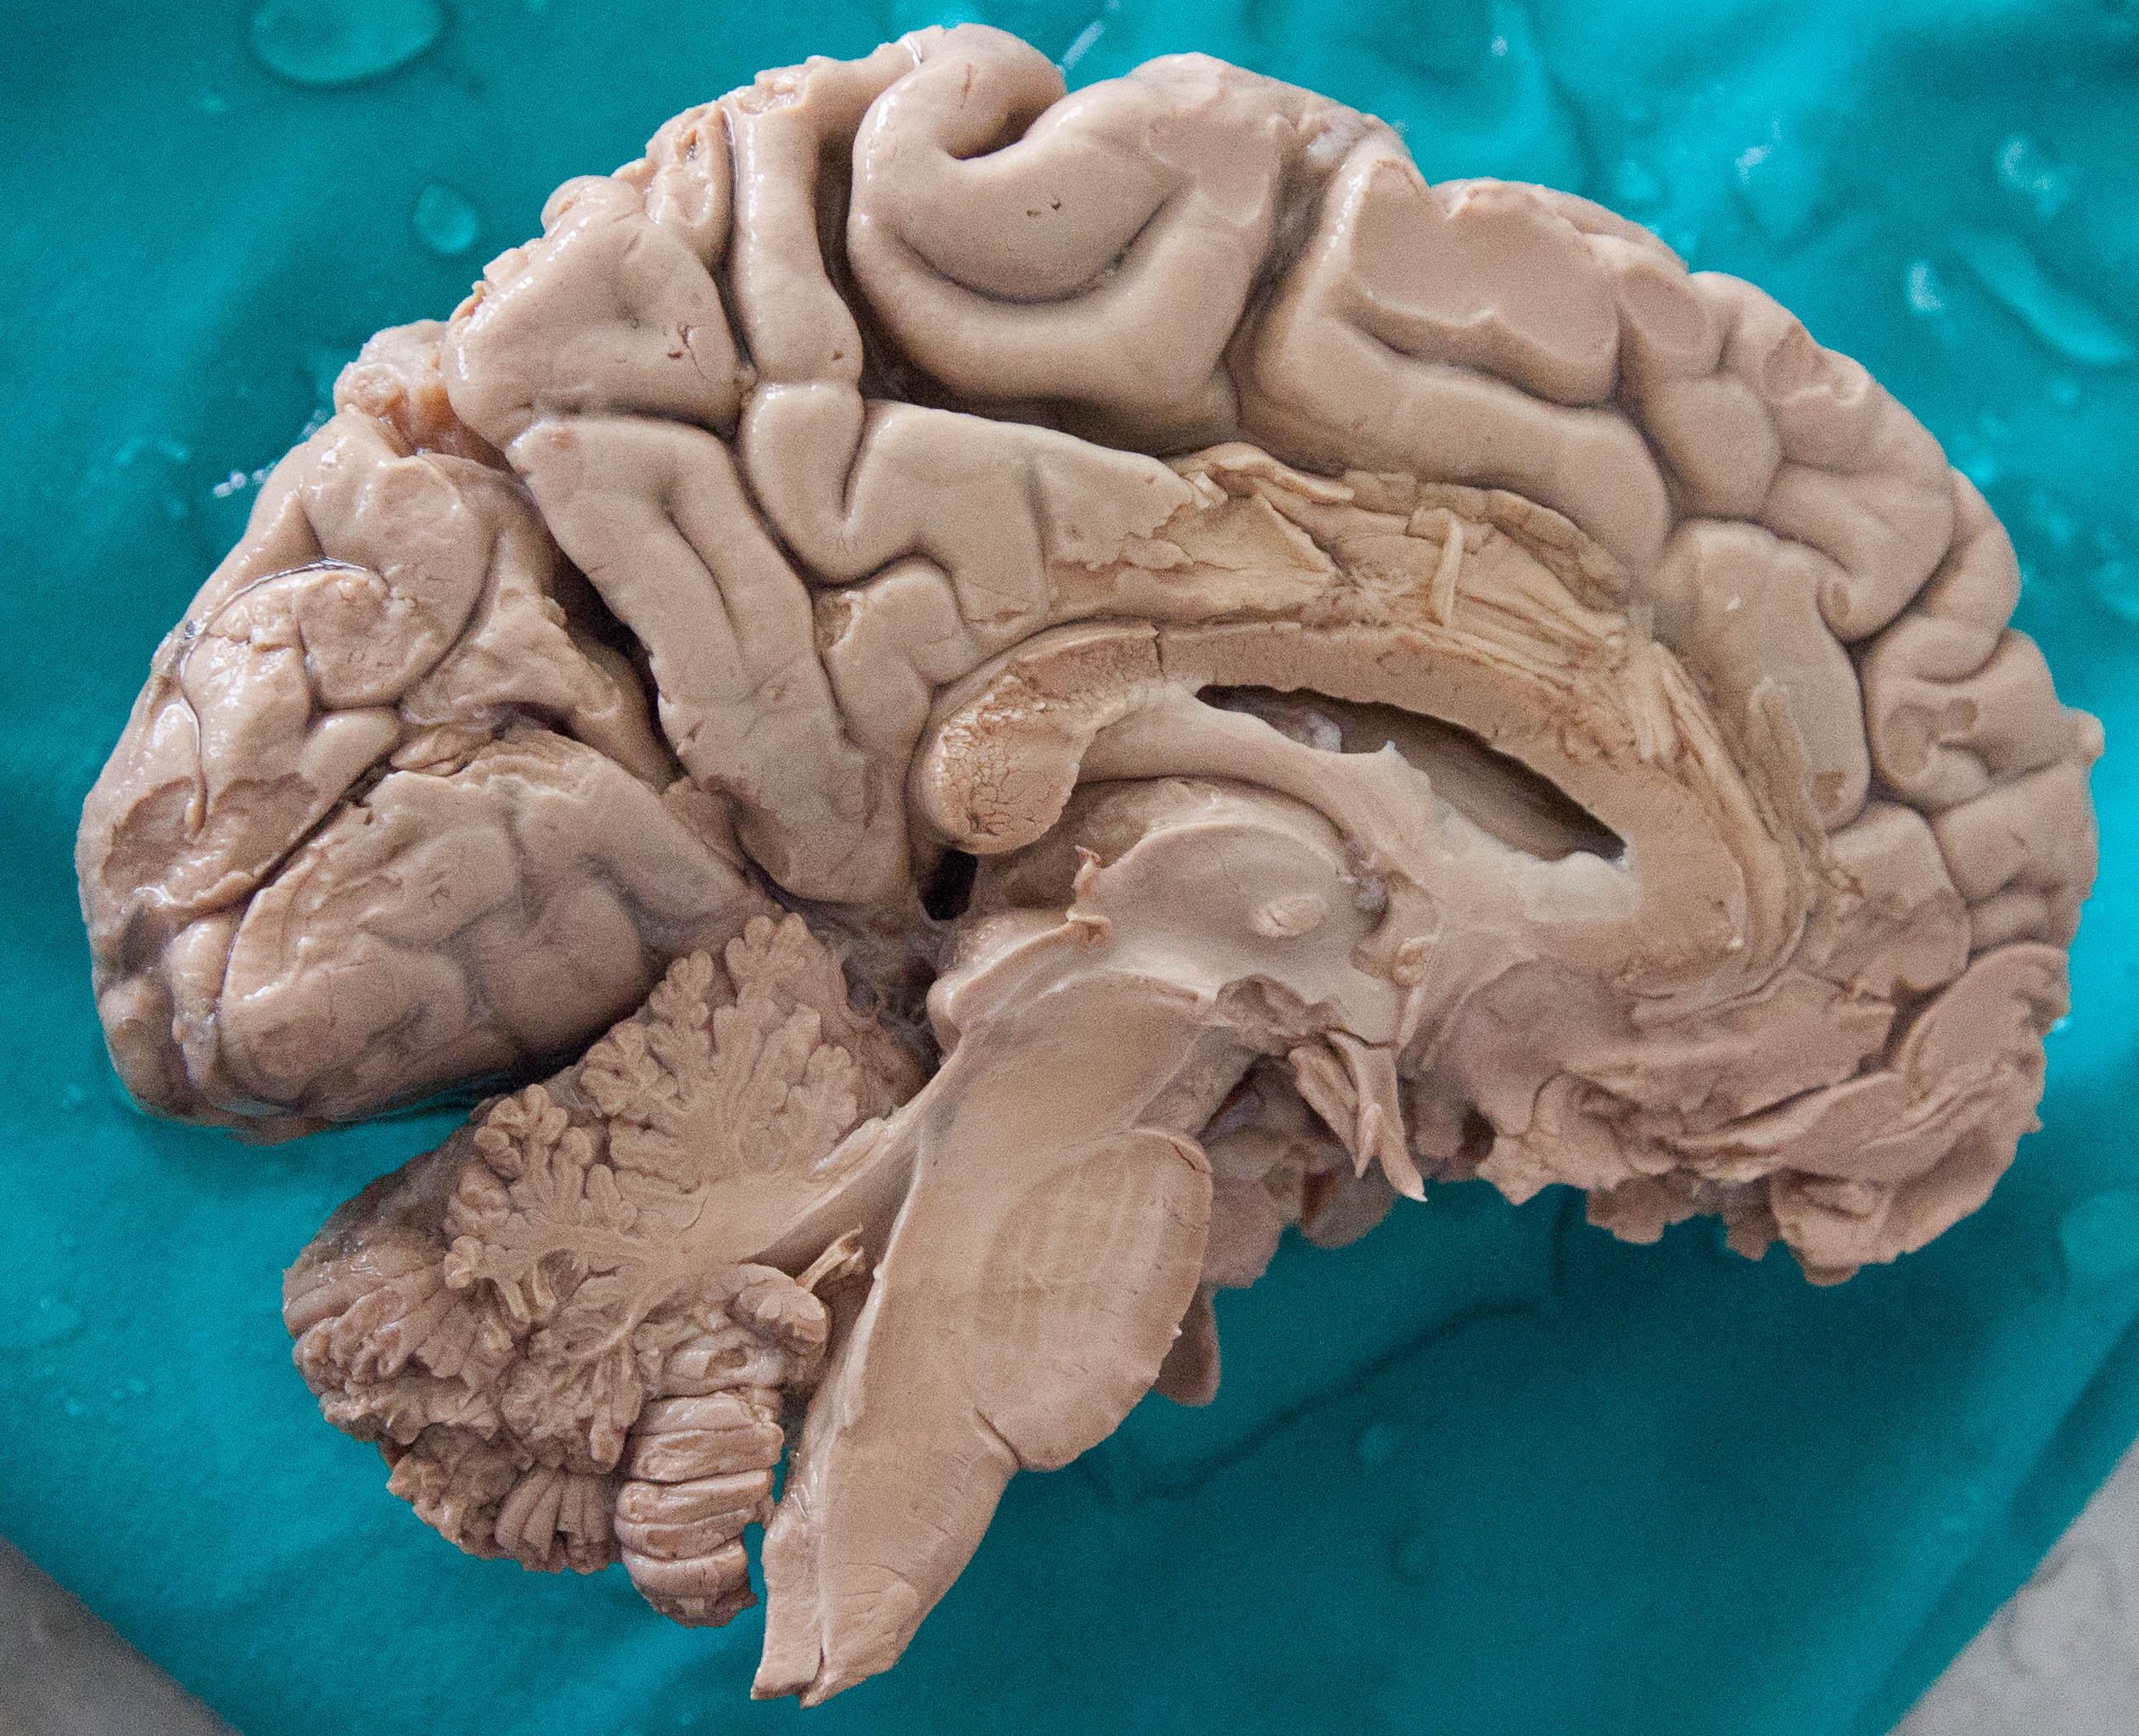 File:Human Brain Dissected.jpg - Wikimedia Commons